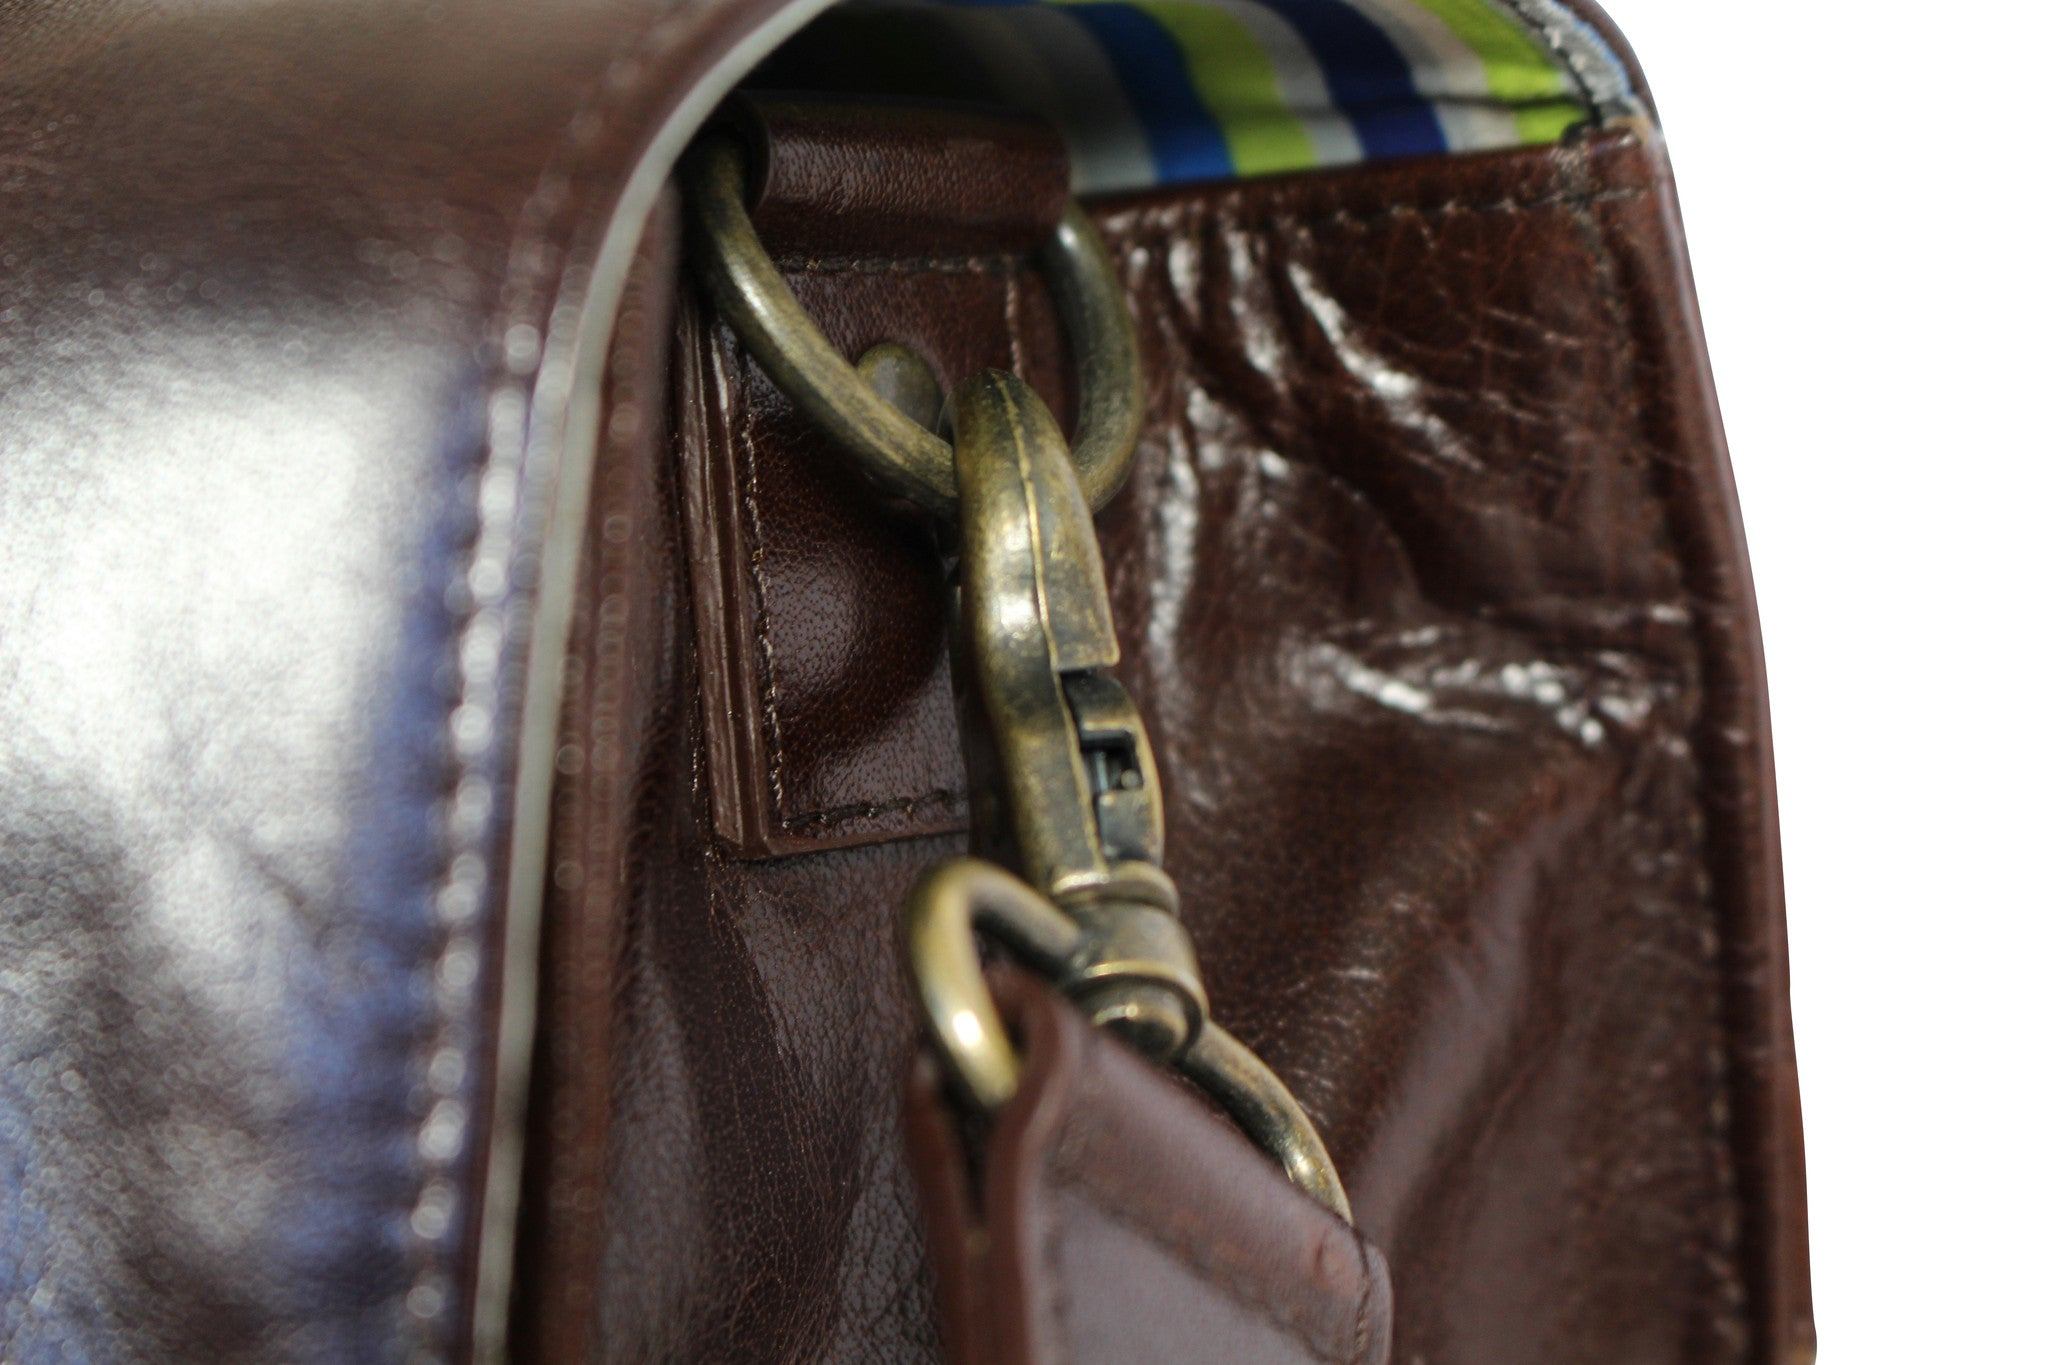 Hill and Ellis Bunbury Classic dark brown Leather Satchel view of leather strap brass attachment for the shoulder strap